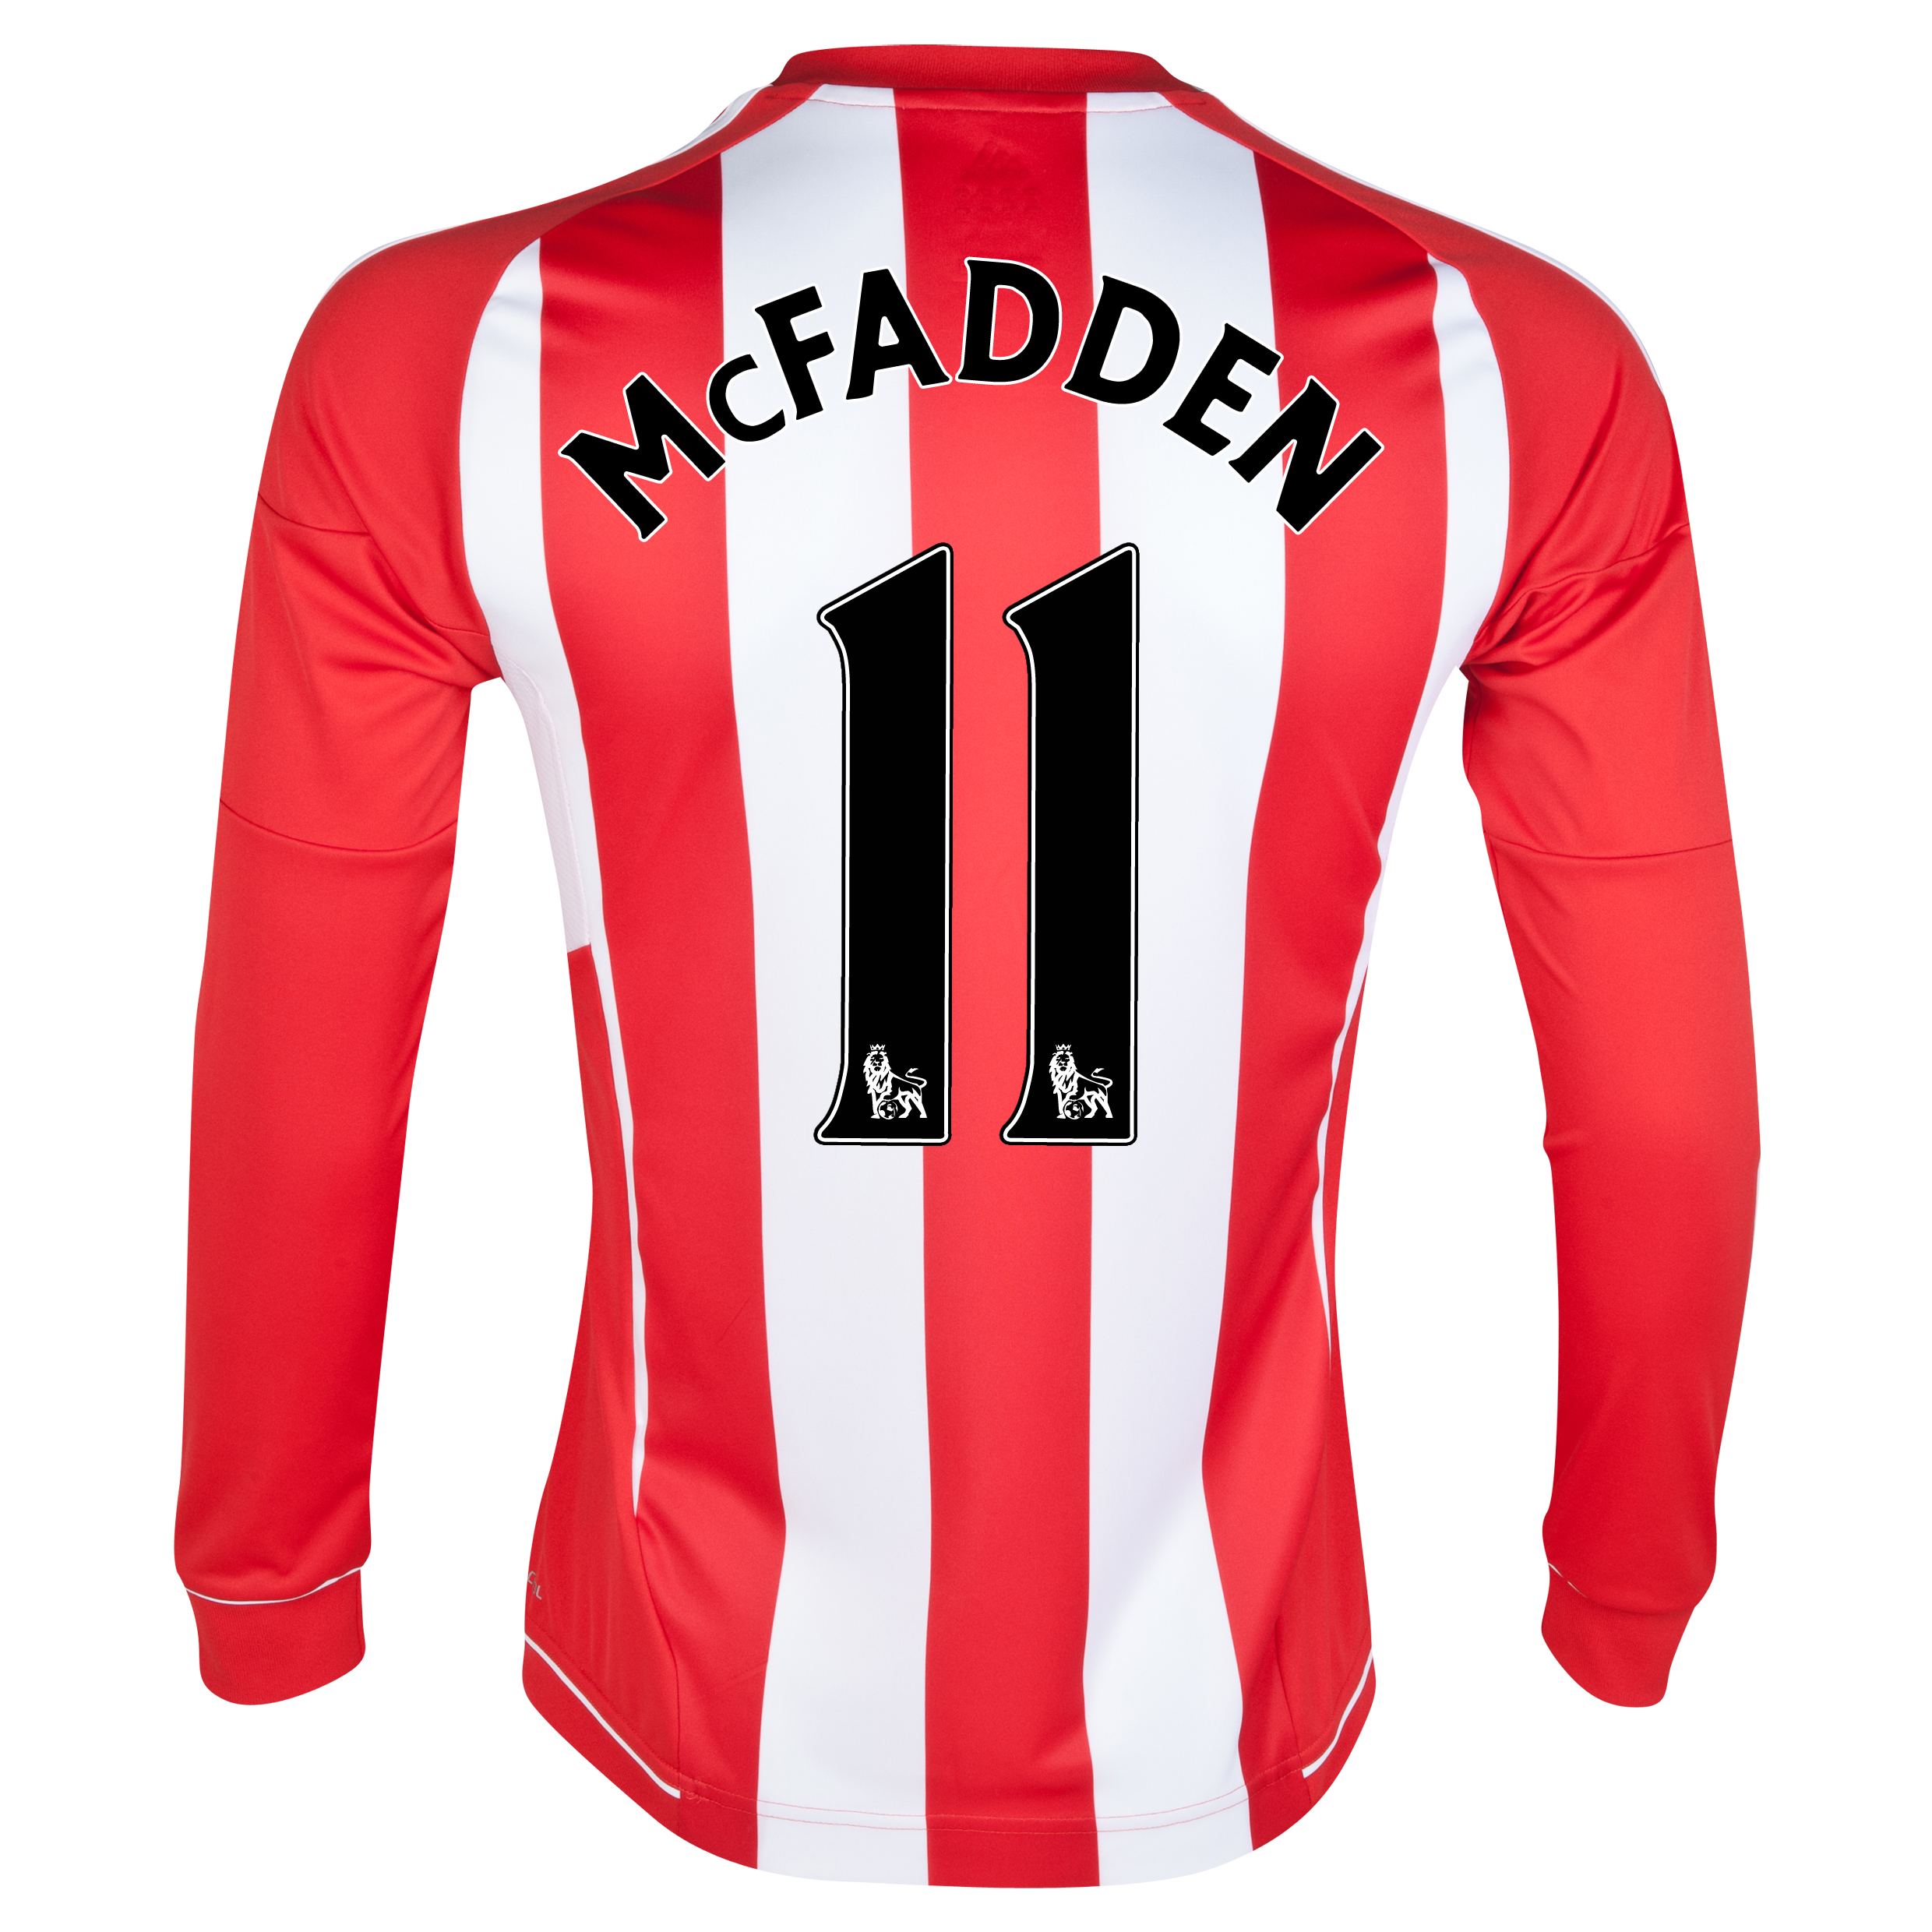 Sunderland Home Shirt 2012/13 - Long Sleeved - Junior with McFadden 11 printing